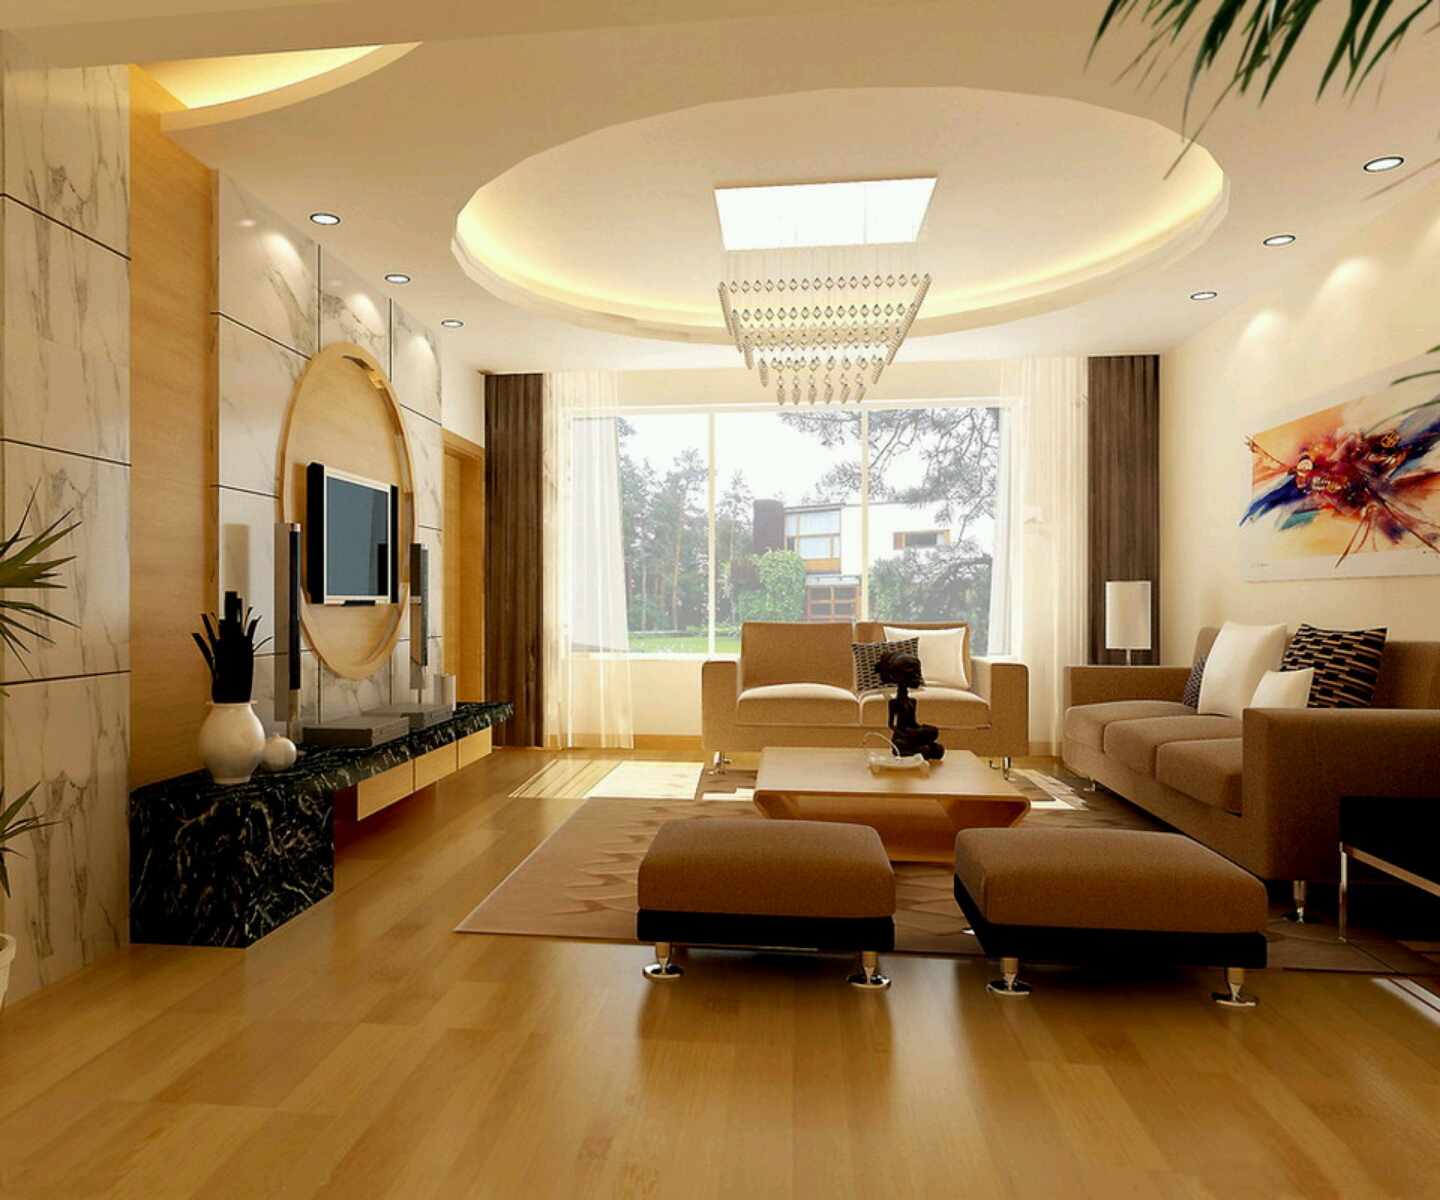 Modern interior decoration living rooms ceiling designs for Modern living room decoration pictures